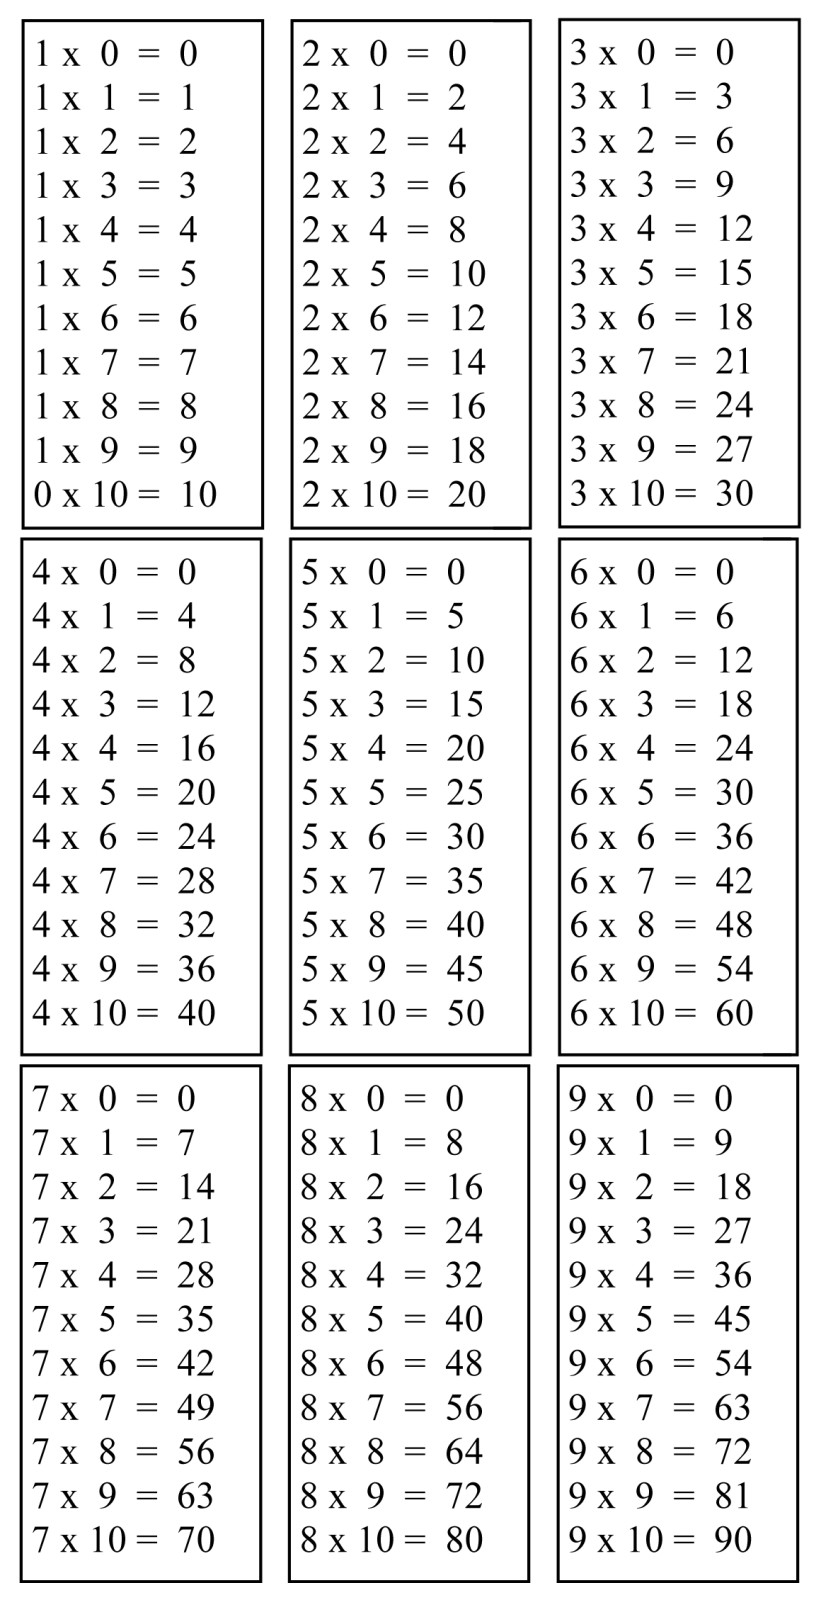 Comment apprendre les tables de multiplication facilement - Apprentissage des tables de multiplication ...